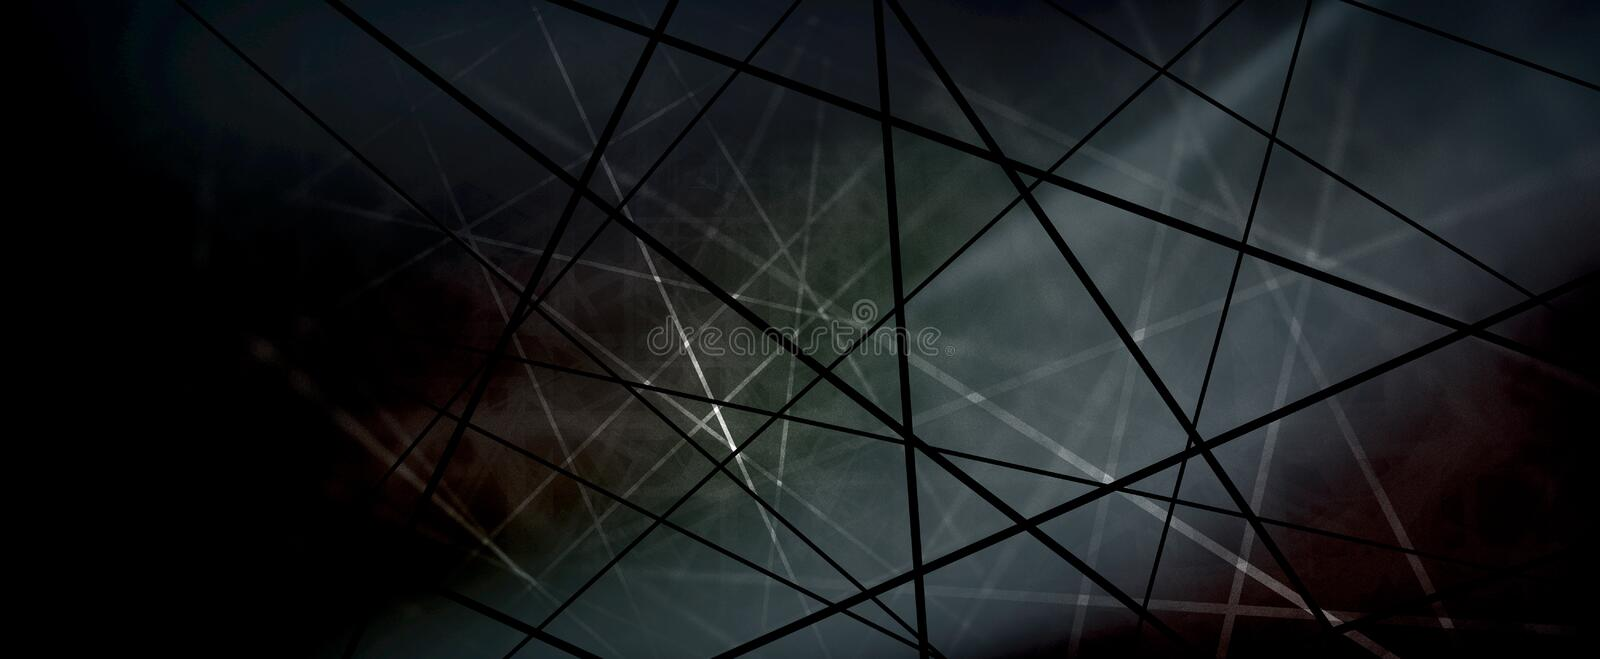 Abstract black and white lines in criss cross or net pattern design in techno background stock illustration